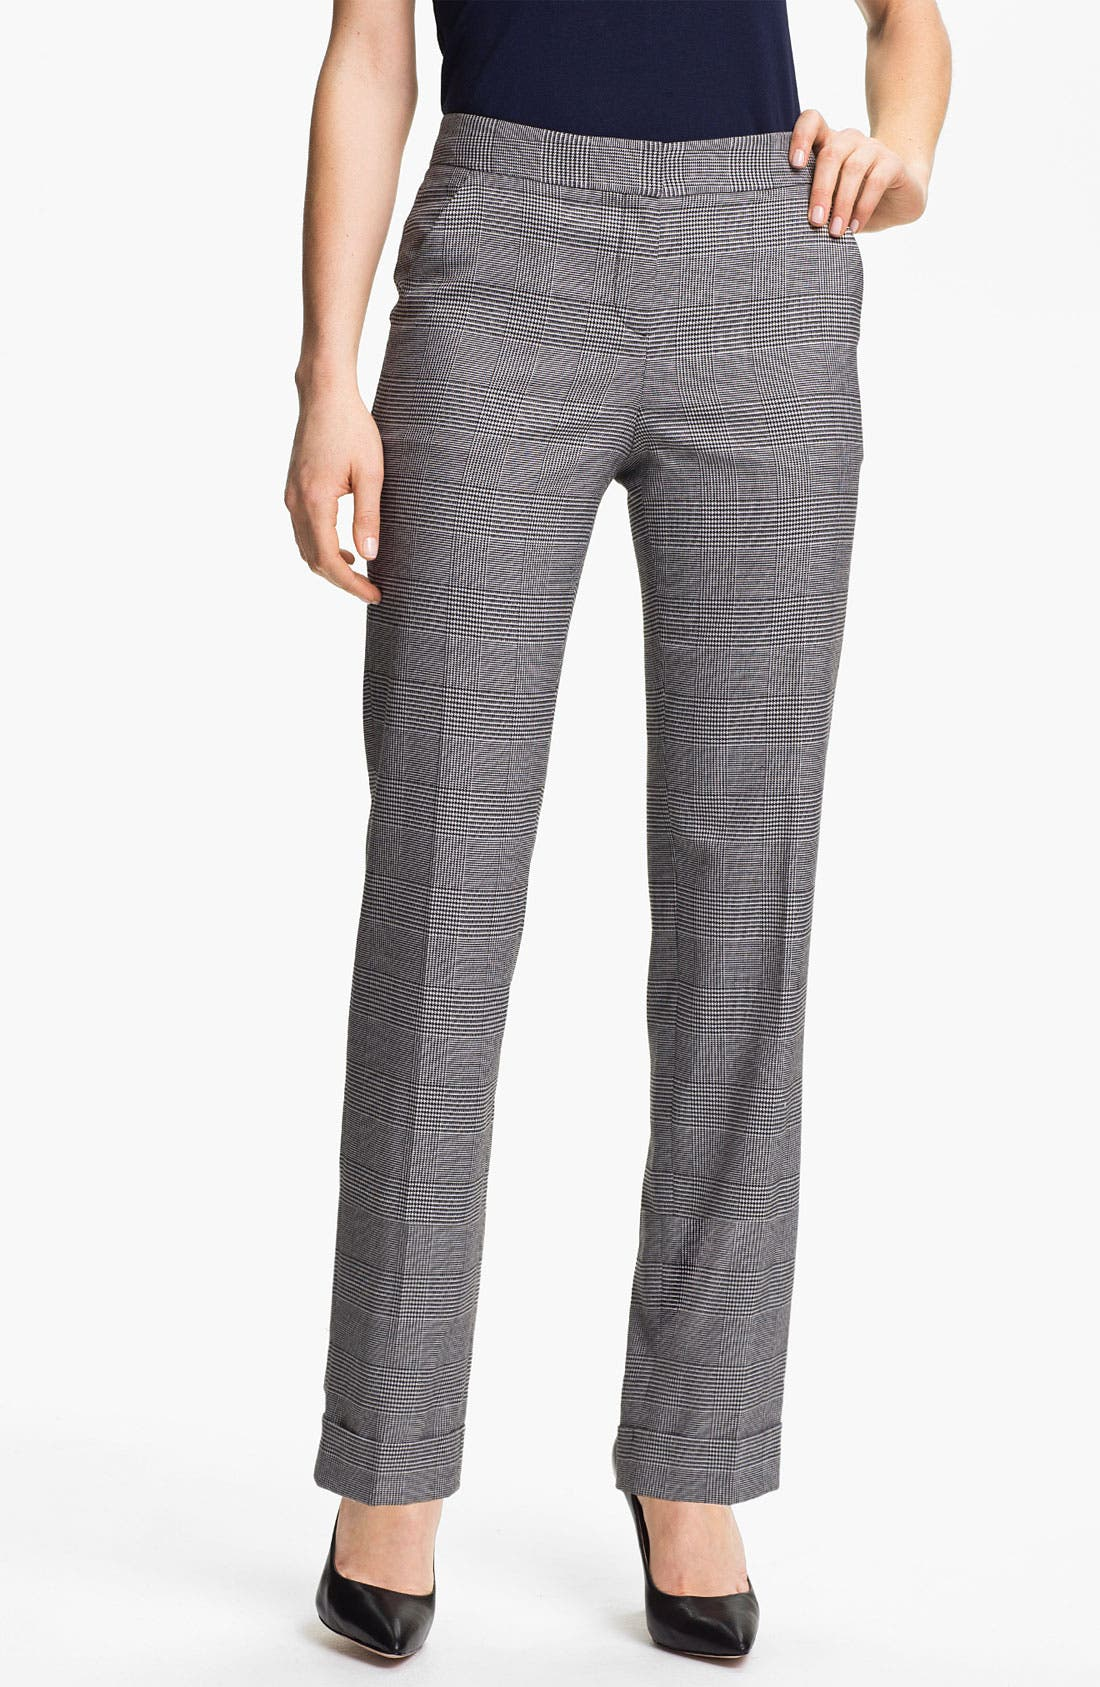 Main Image - Anne Klein Cuffed Glen Plaid Pants (Petite)